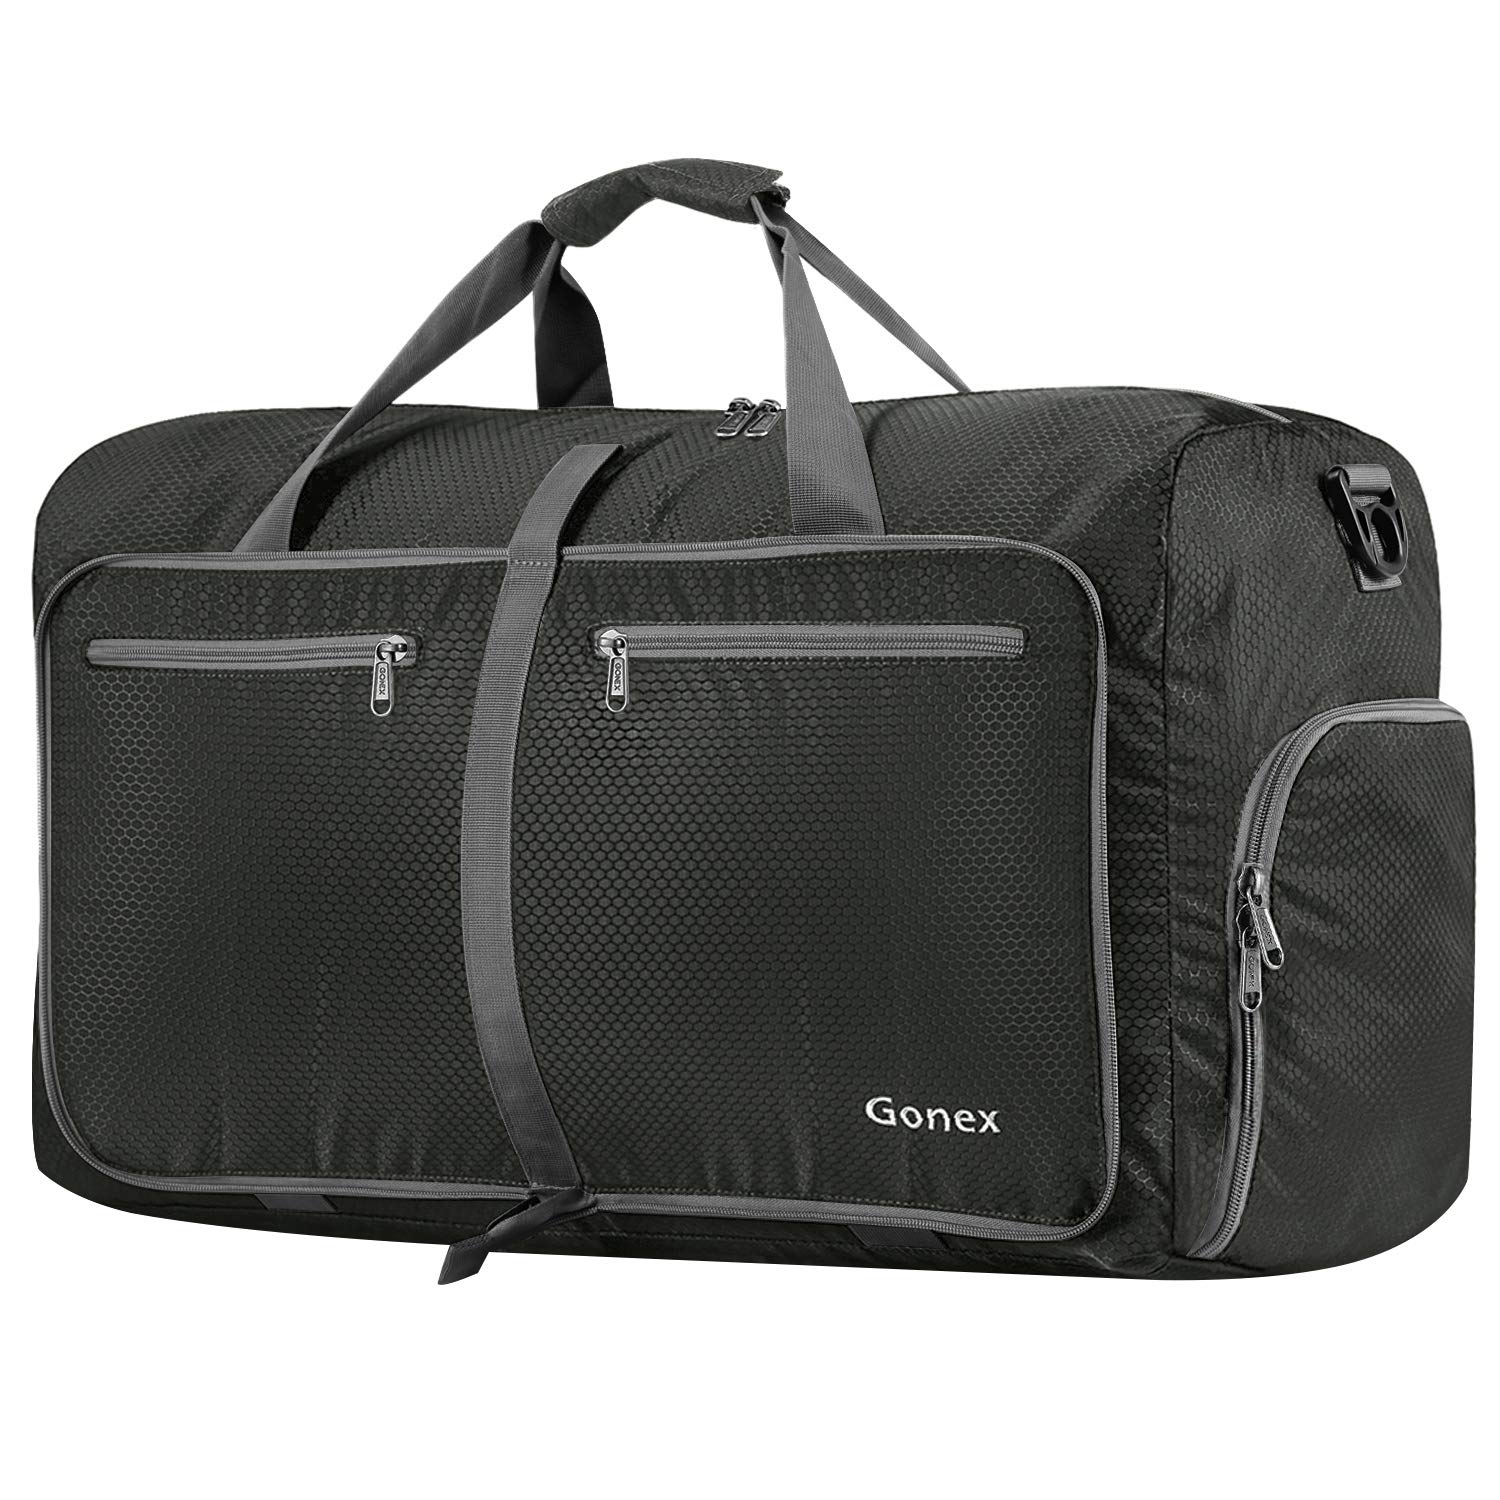 Gonex 80L Foldable Travel Duffle Bag for Luggage, Gym, Sport, Camping, Storage, Shopping Water Repellent & Tear Resistant Grey product image